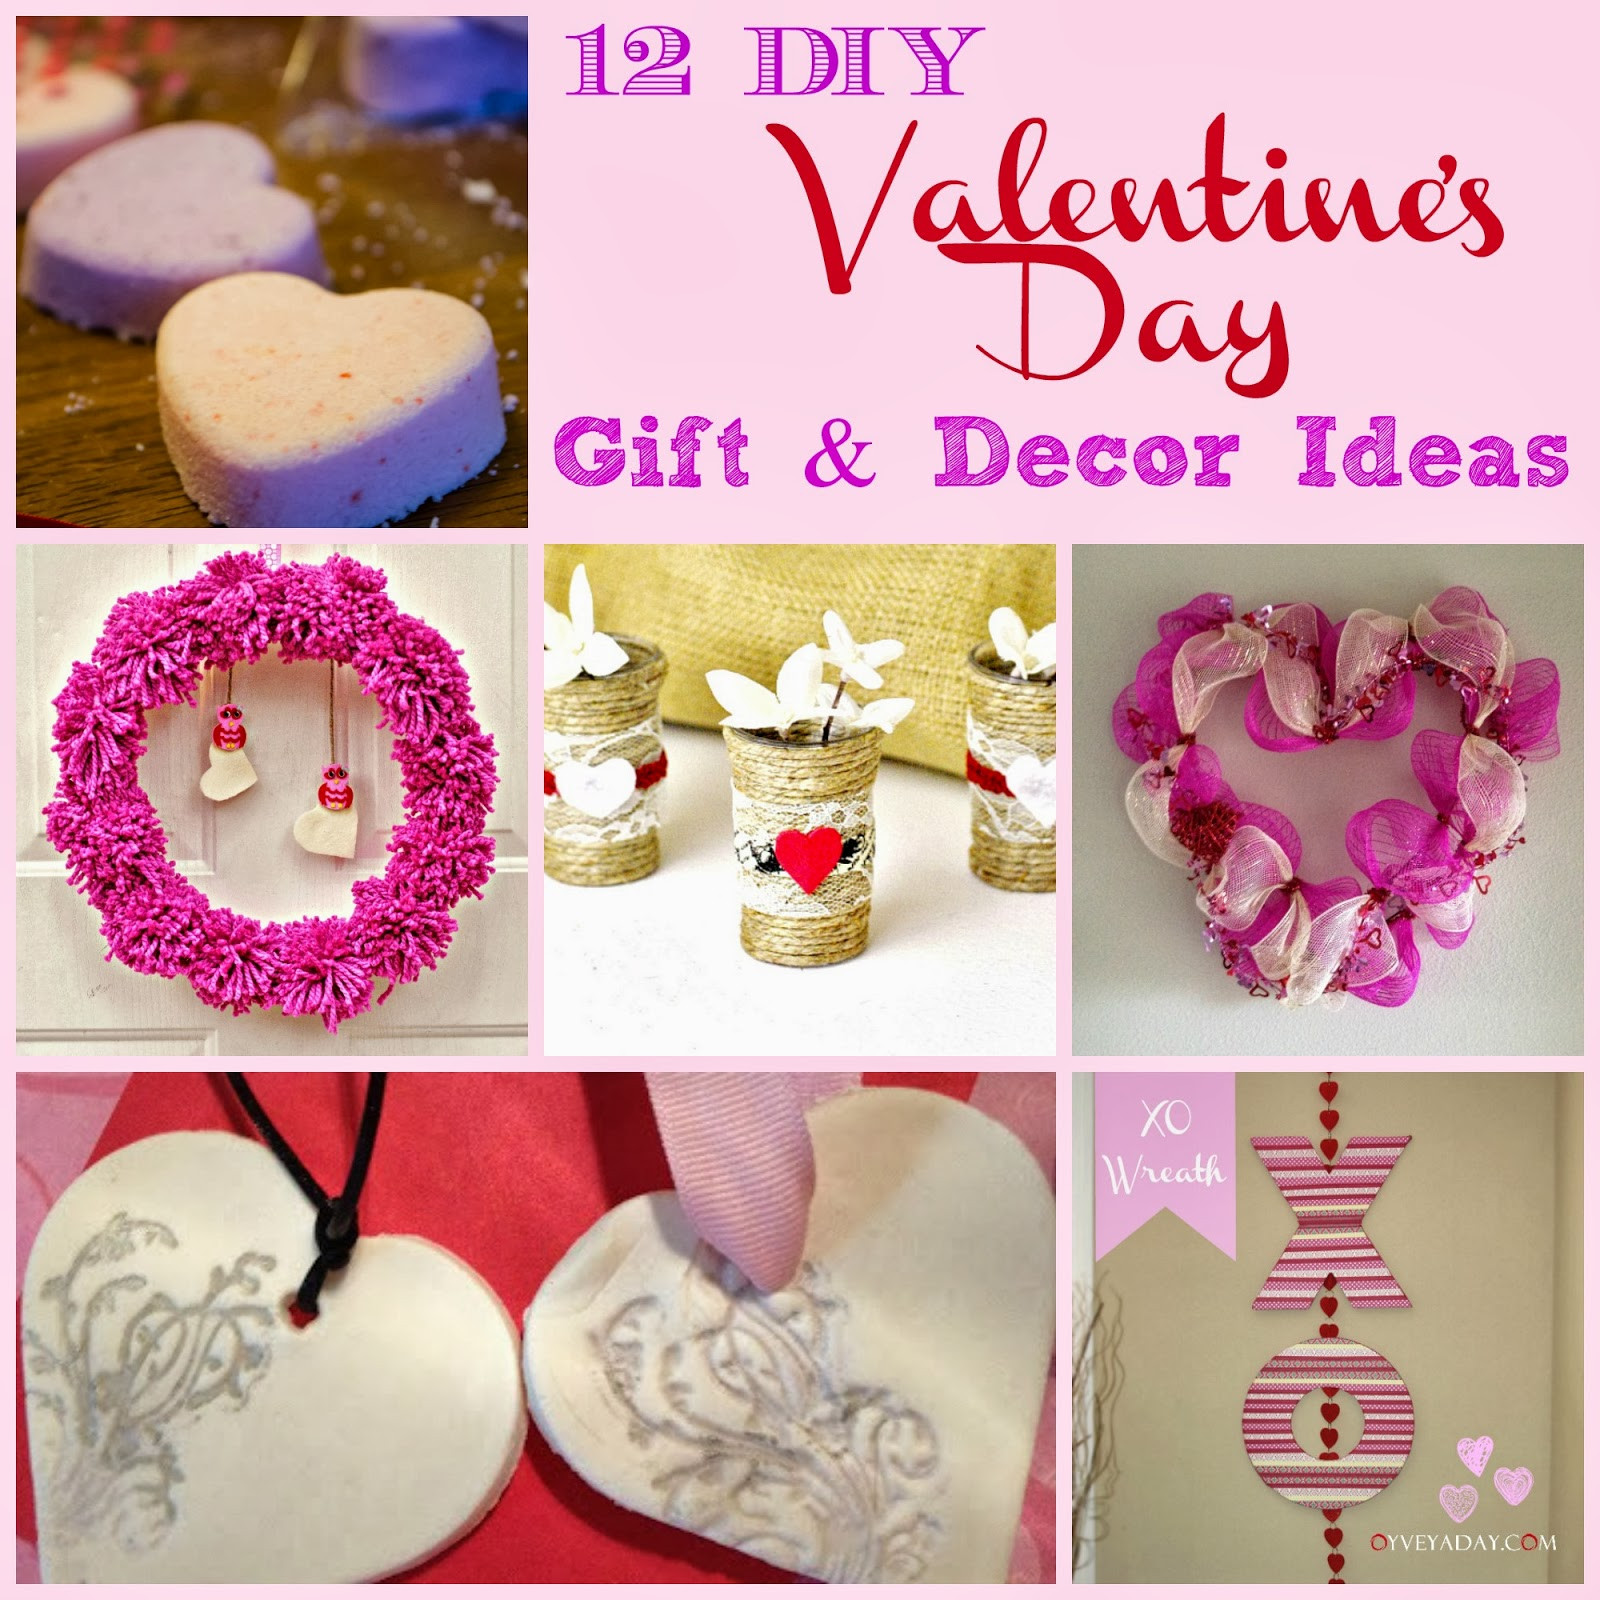 Best ideas about Homemade Valentine Gift Ideas . Save or Pin 12 DIY Valentine s Day Gift & Decor Ideas Outnumbered 3 to 1 Now.